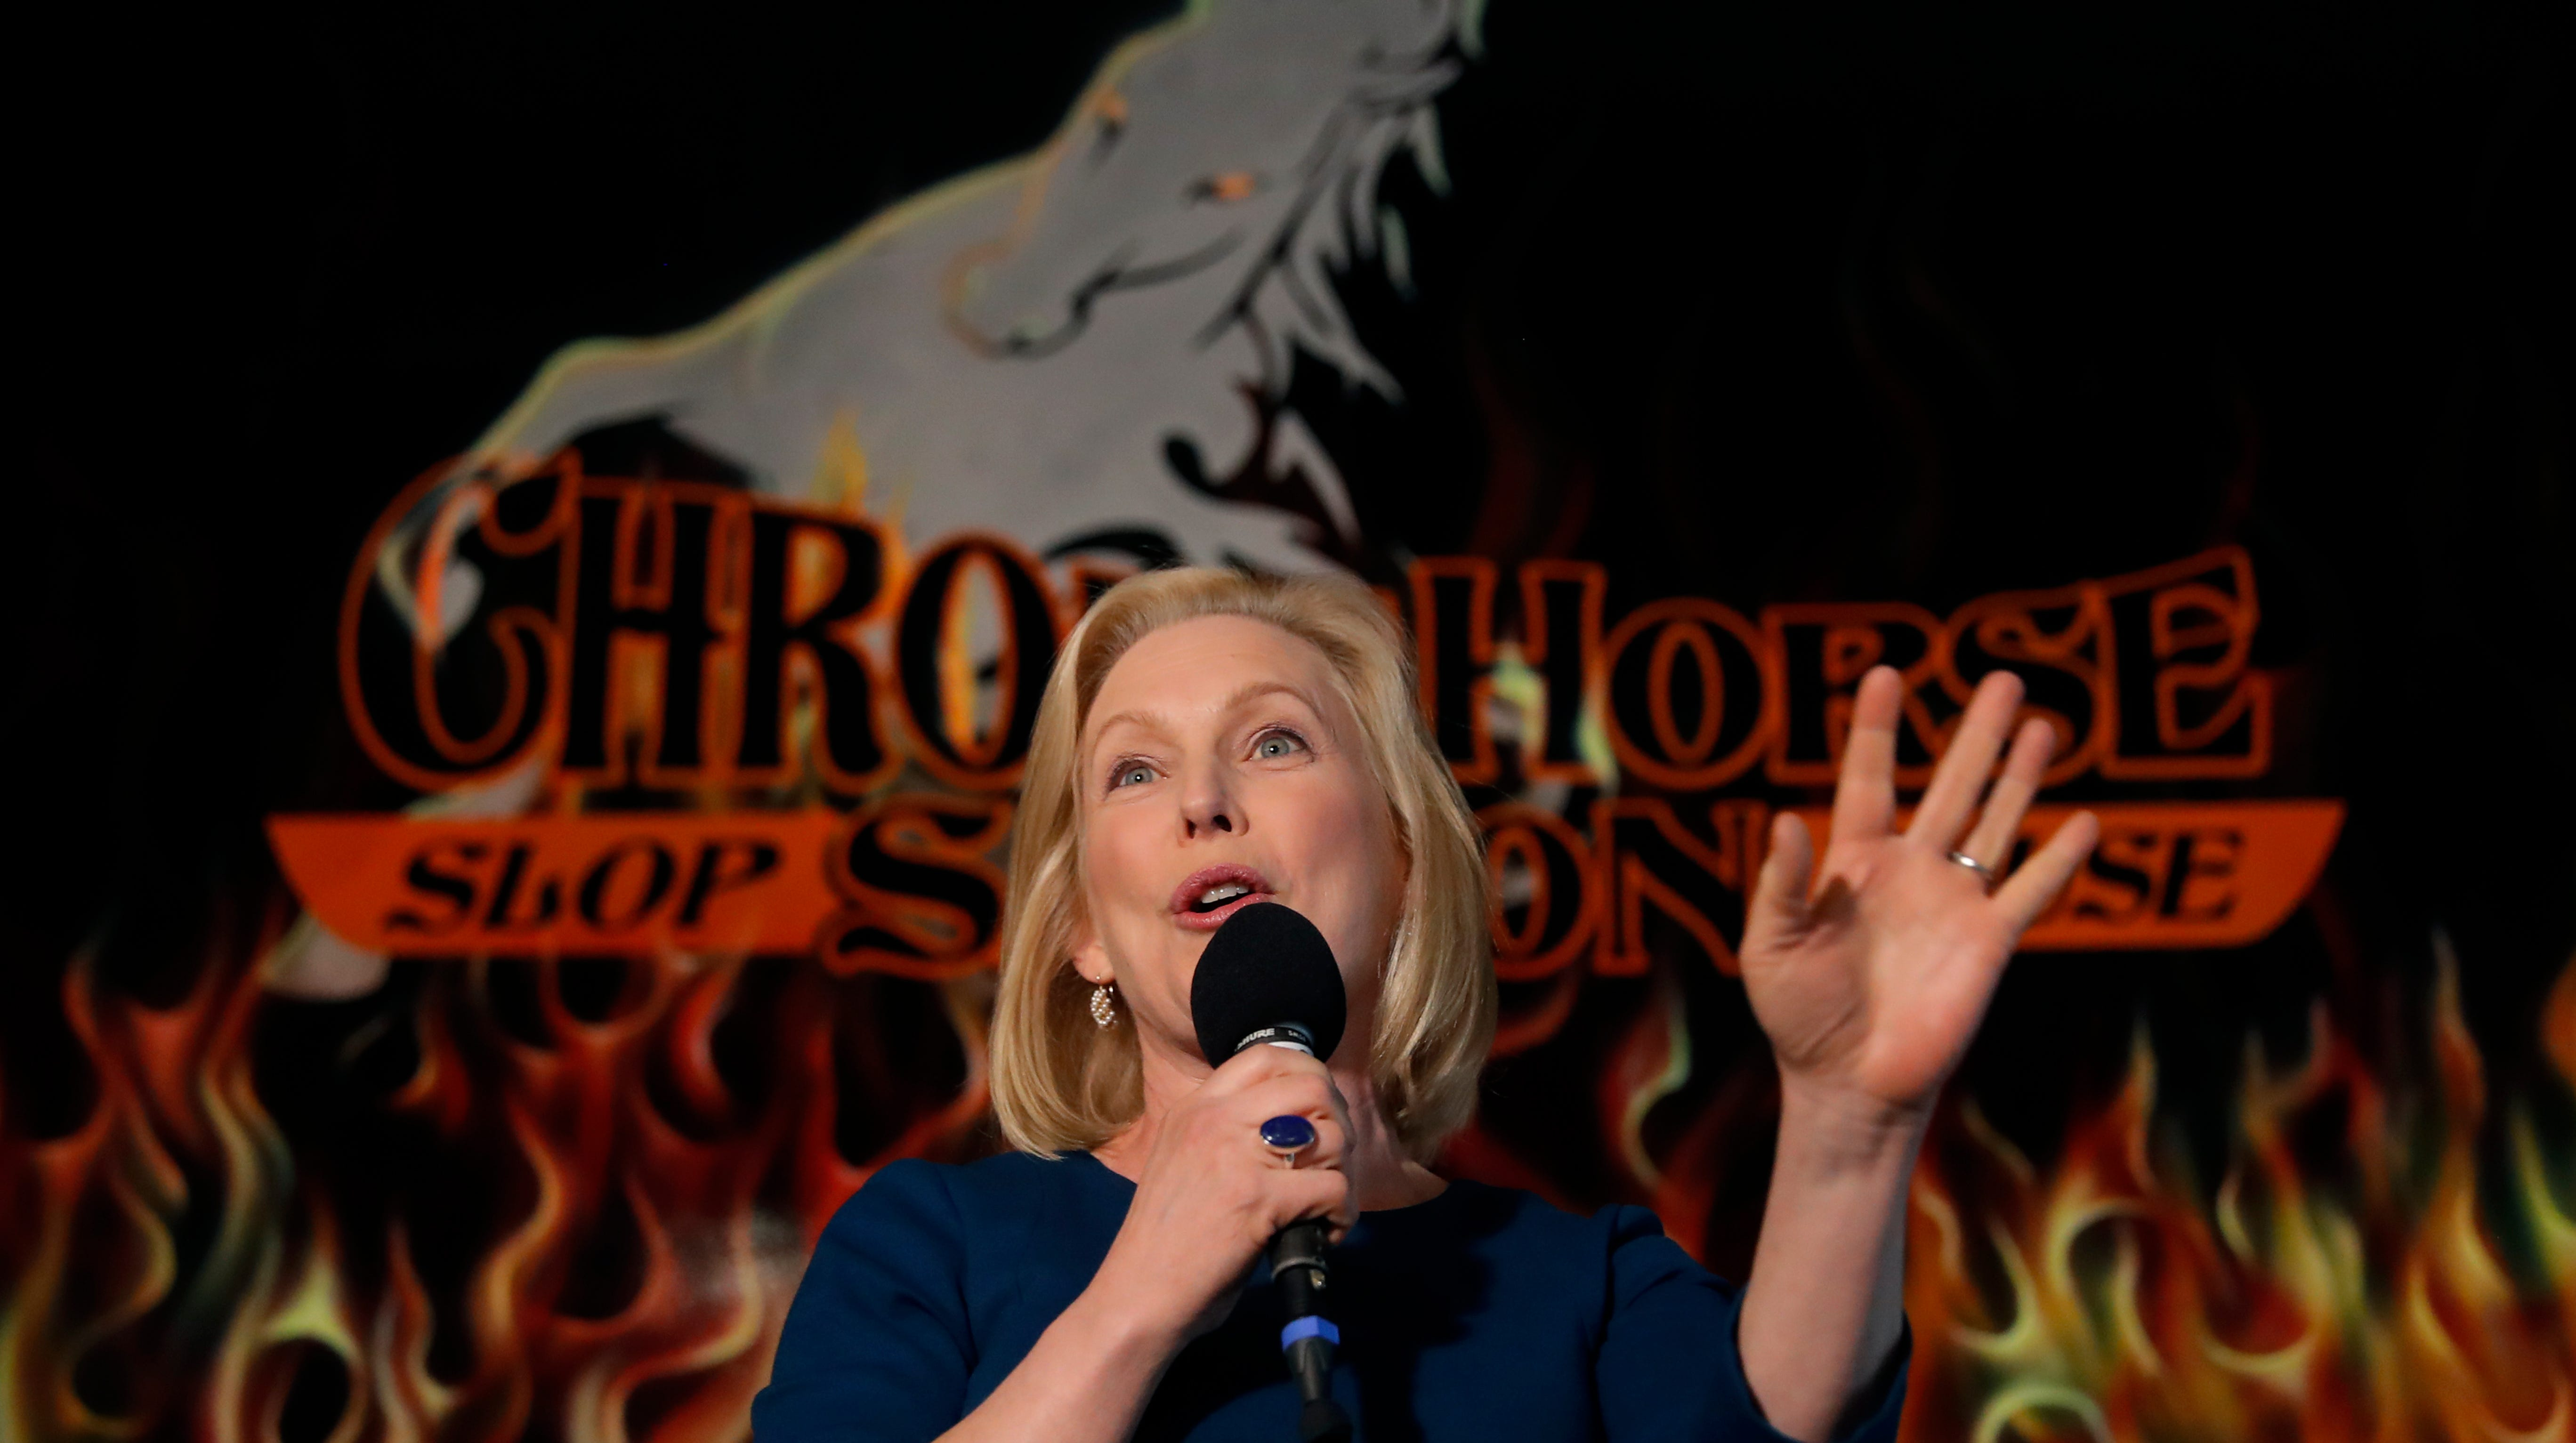 U.S. Sen. Kirsten Gillibrand, D-N.Y., speaks during a meet-and-greet with local residents Monday, Feb. 18, 2019, in Cedar Rapids, Iowa. (AP Photo/Charlie Neibergall)